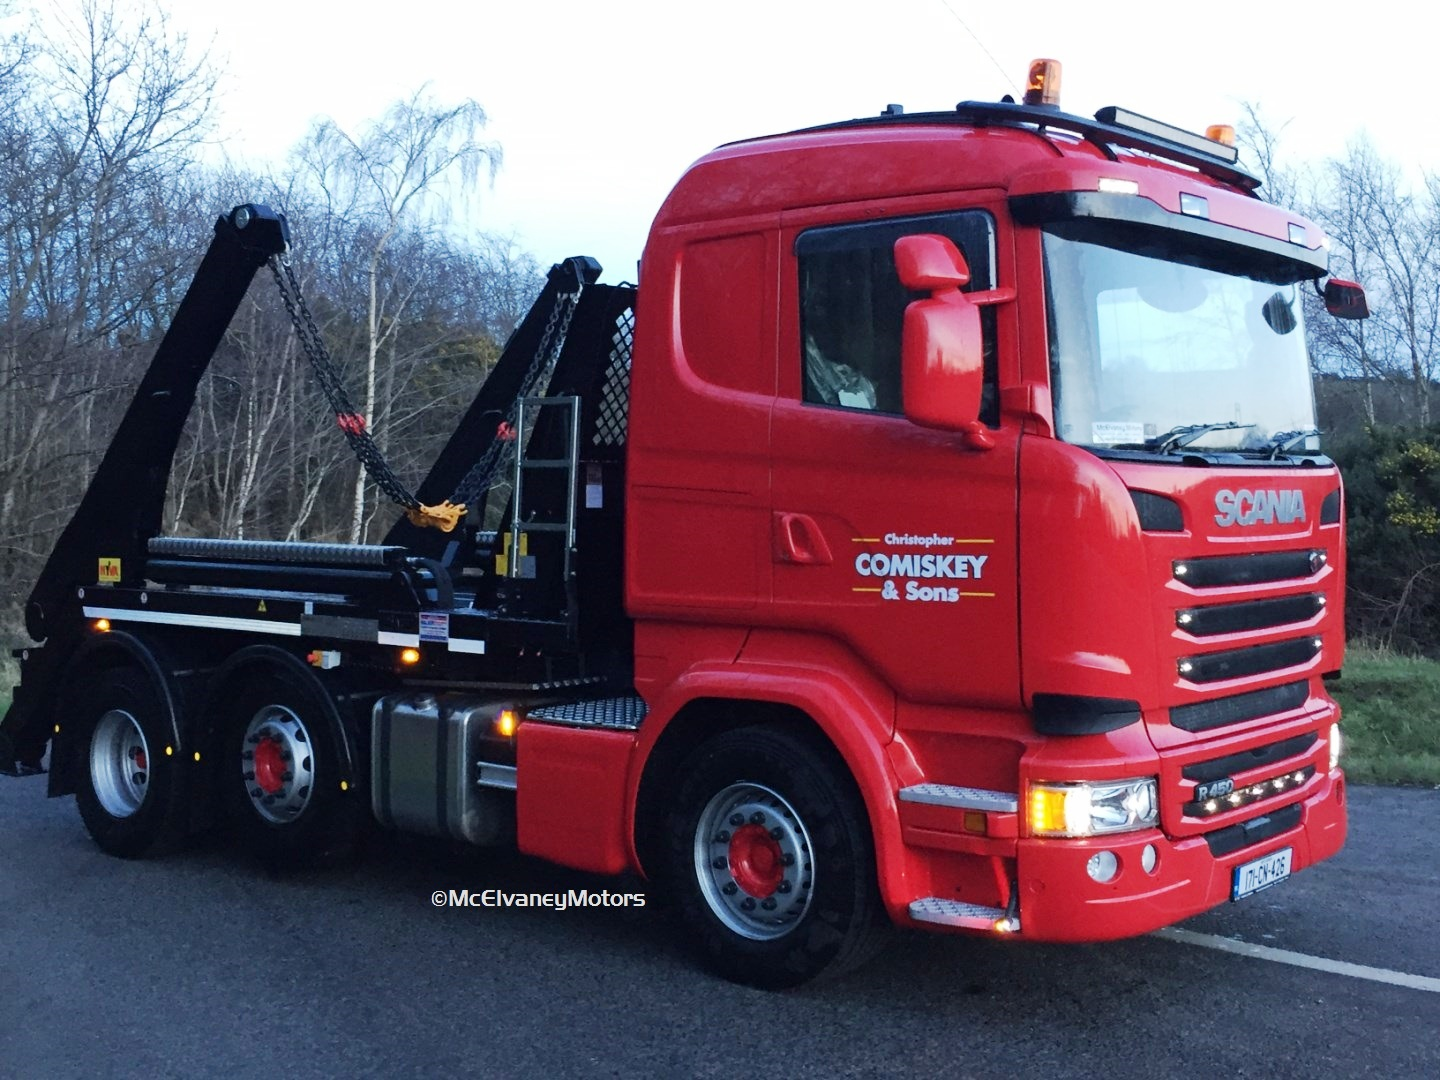 Christopher Comiskey & Sons Purchase new Scania Skip Truck!